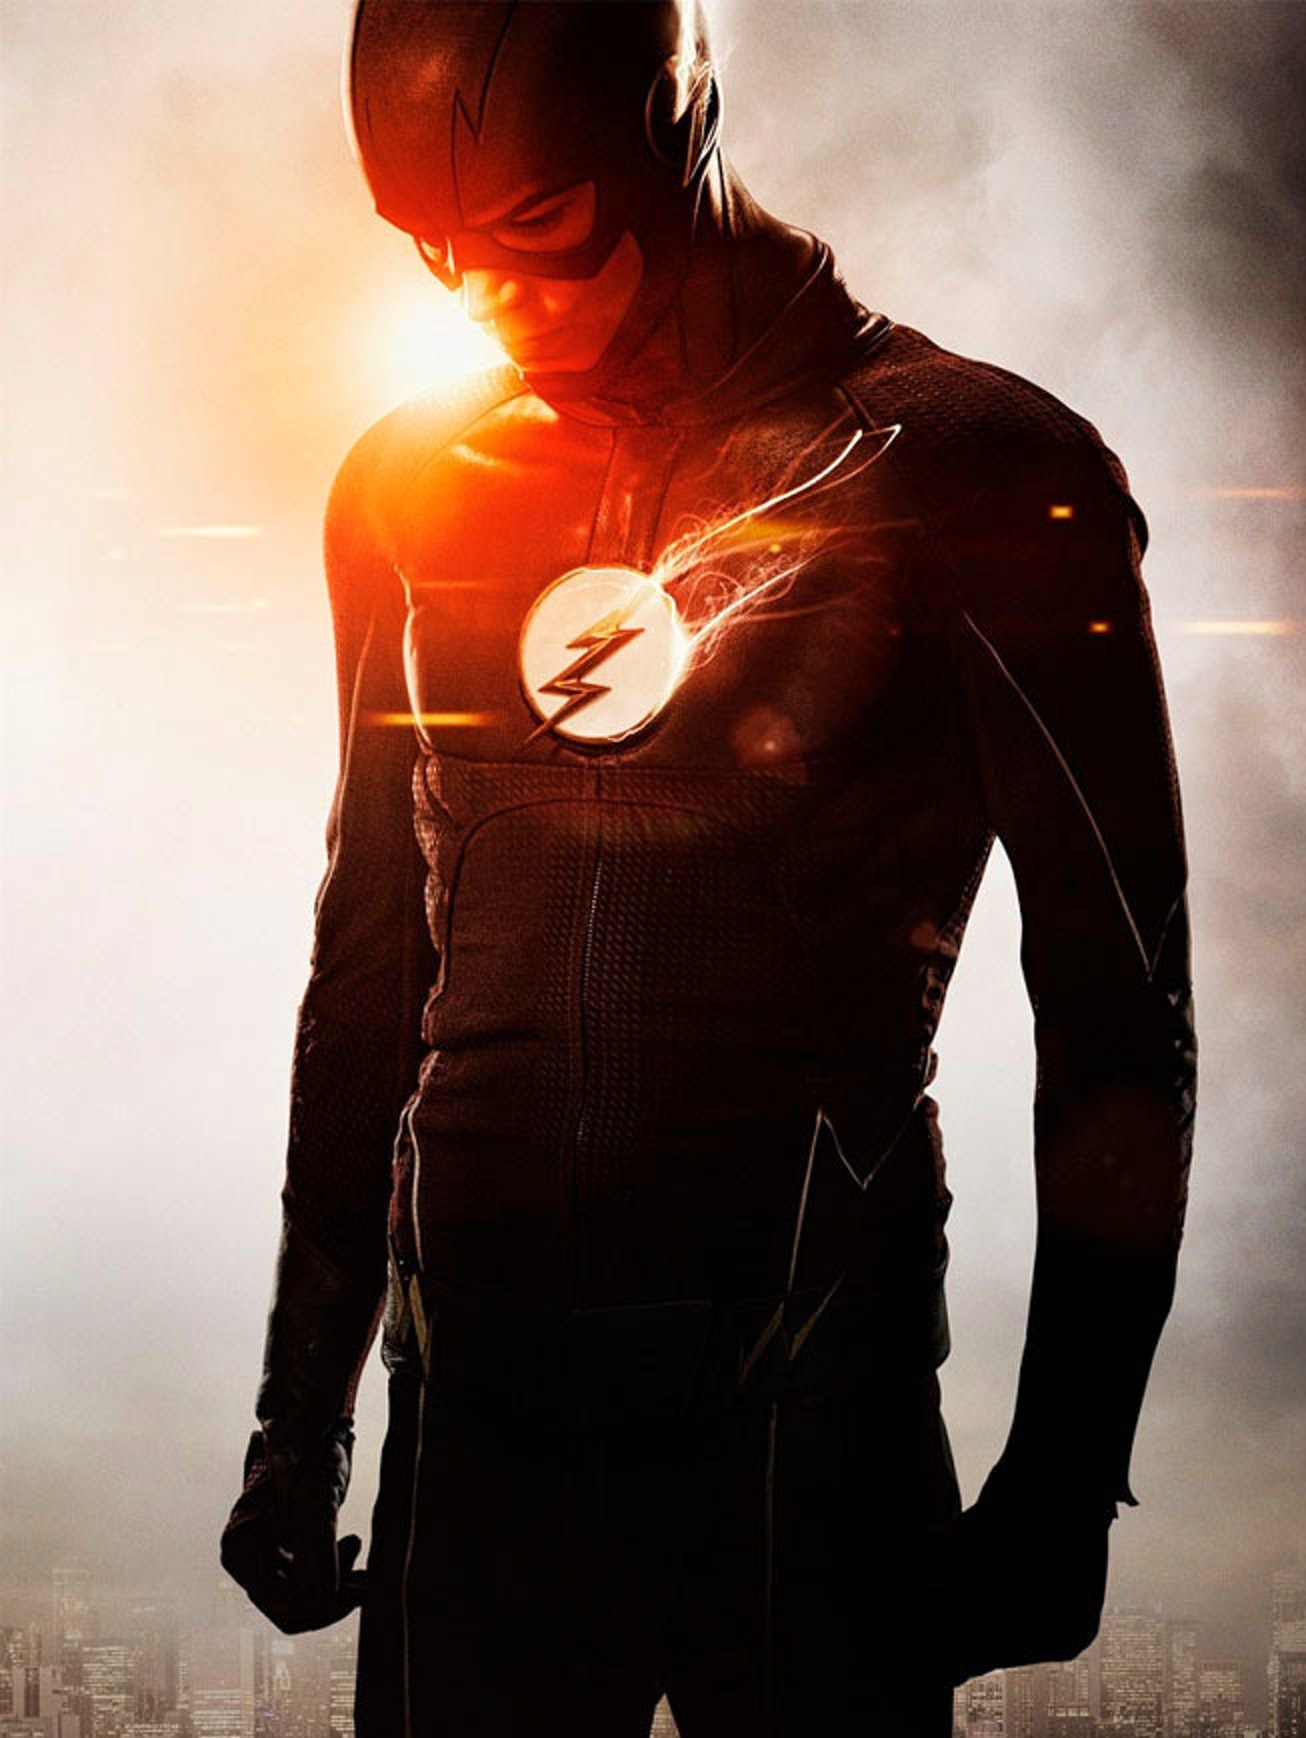 39 The Flash 39 Season Two Teaser Shows Off Jay Garrick Inverse